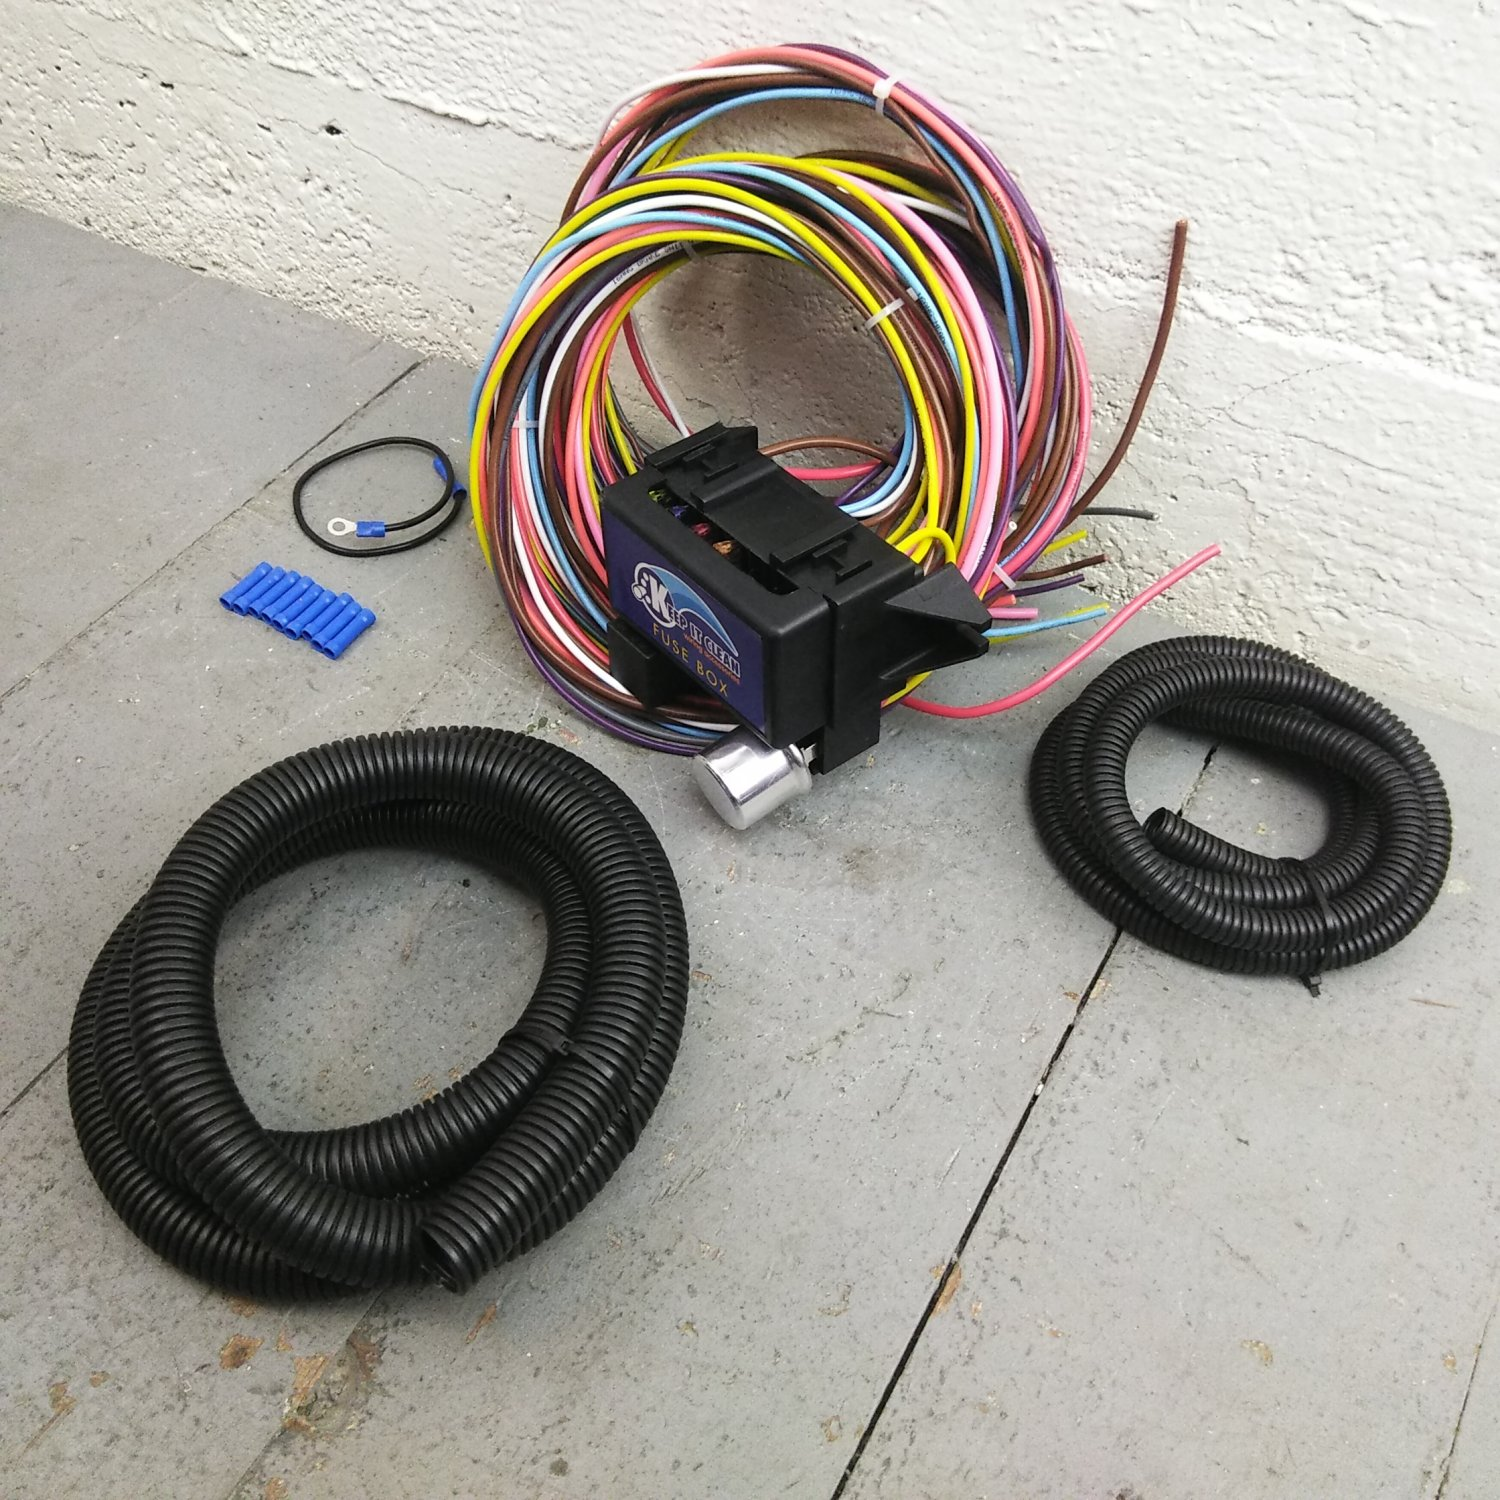 1960 1965 Ford Falcon 8 Circuit Wire Harness Fits Painless